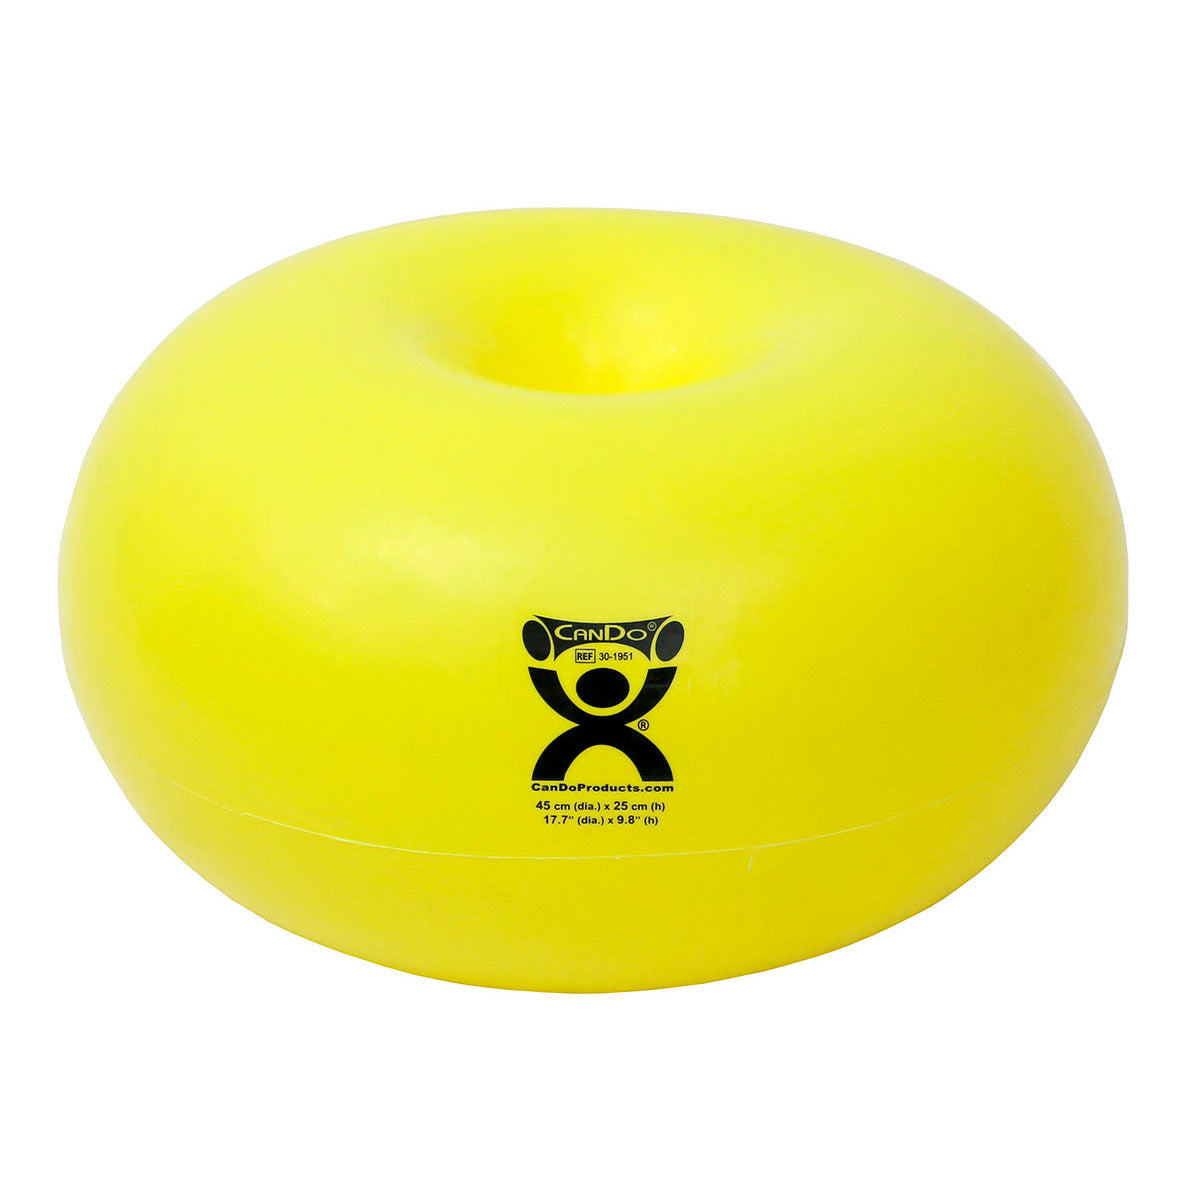 CanDo® Inflatable Donut Exercise Ball yellow